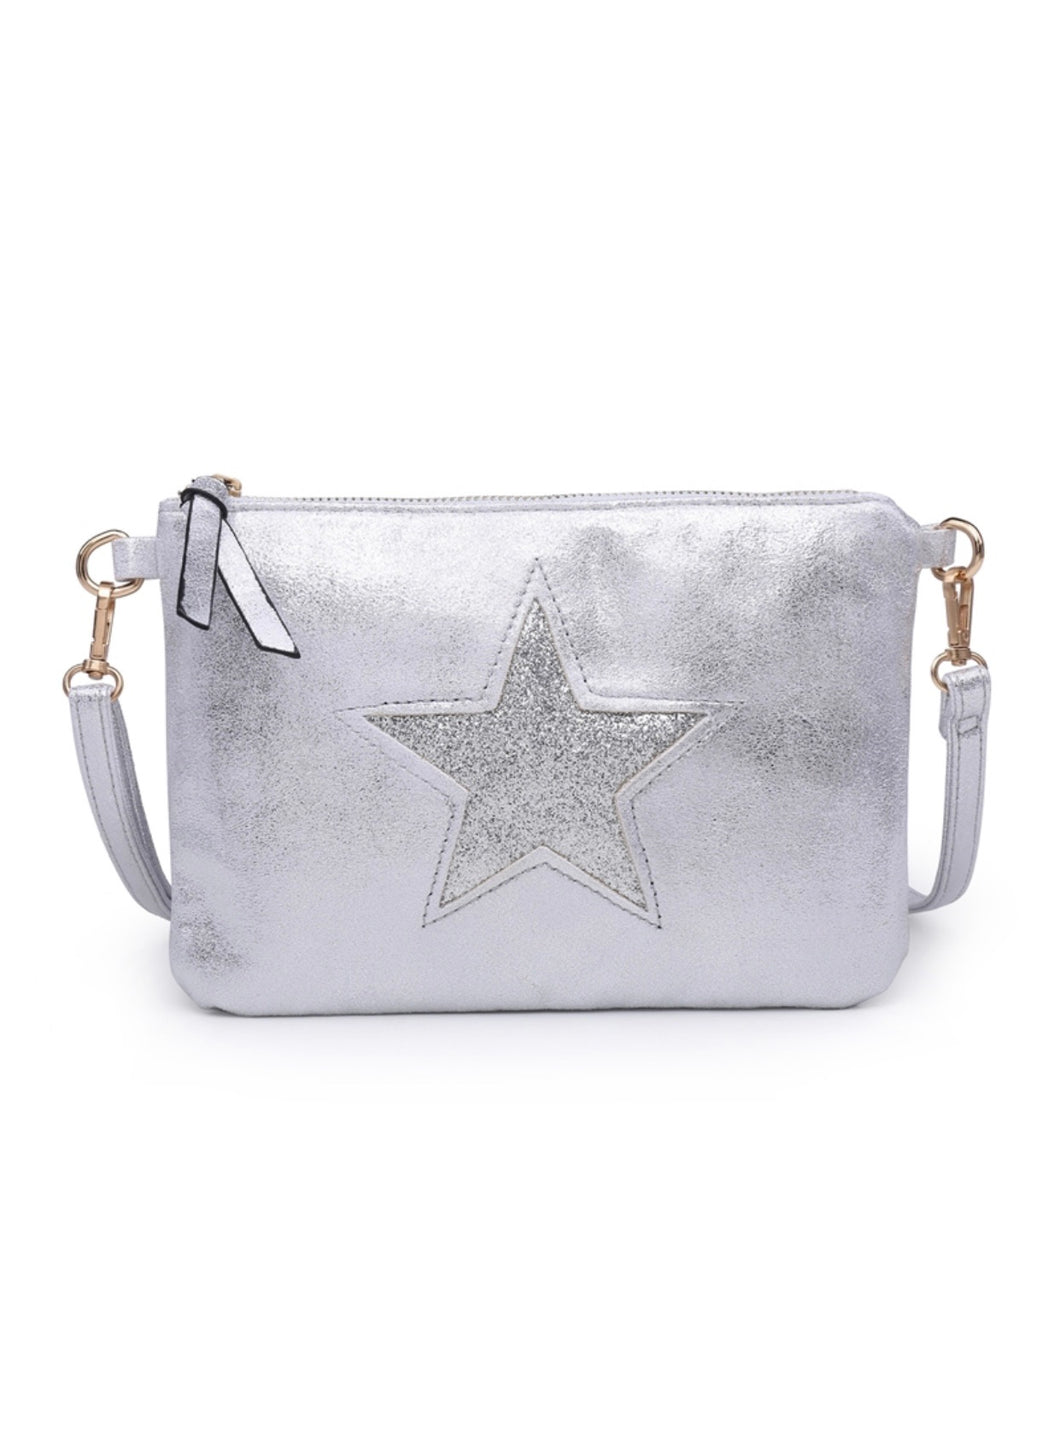 Silver star clutch with shoulder strap